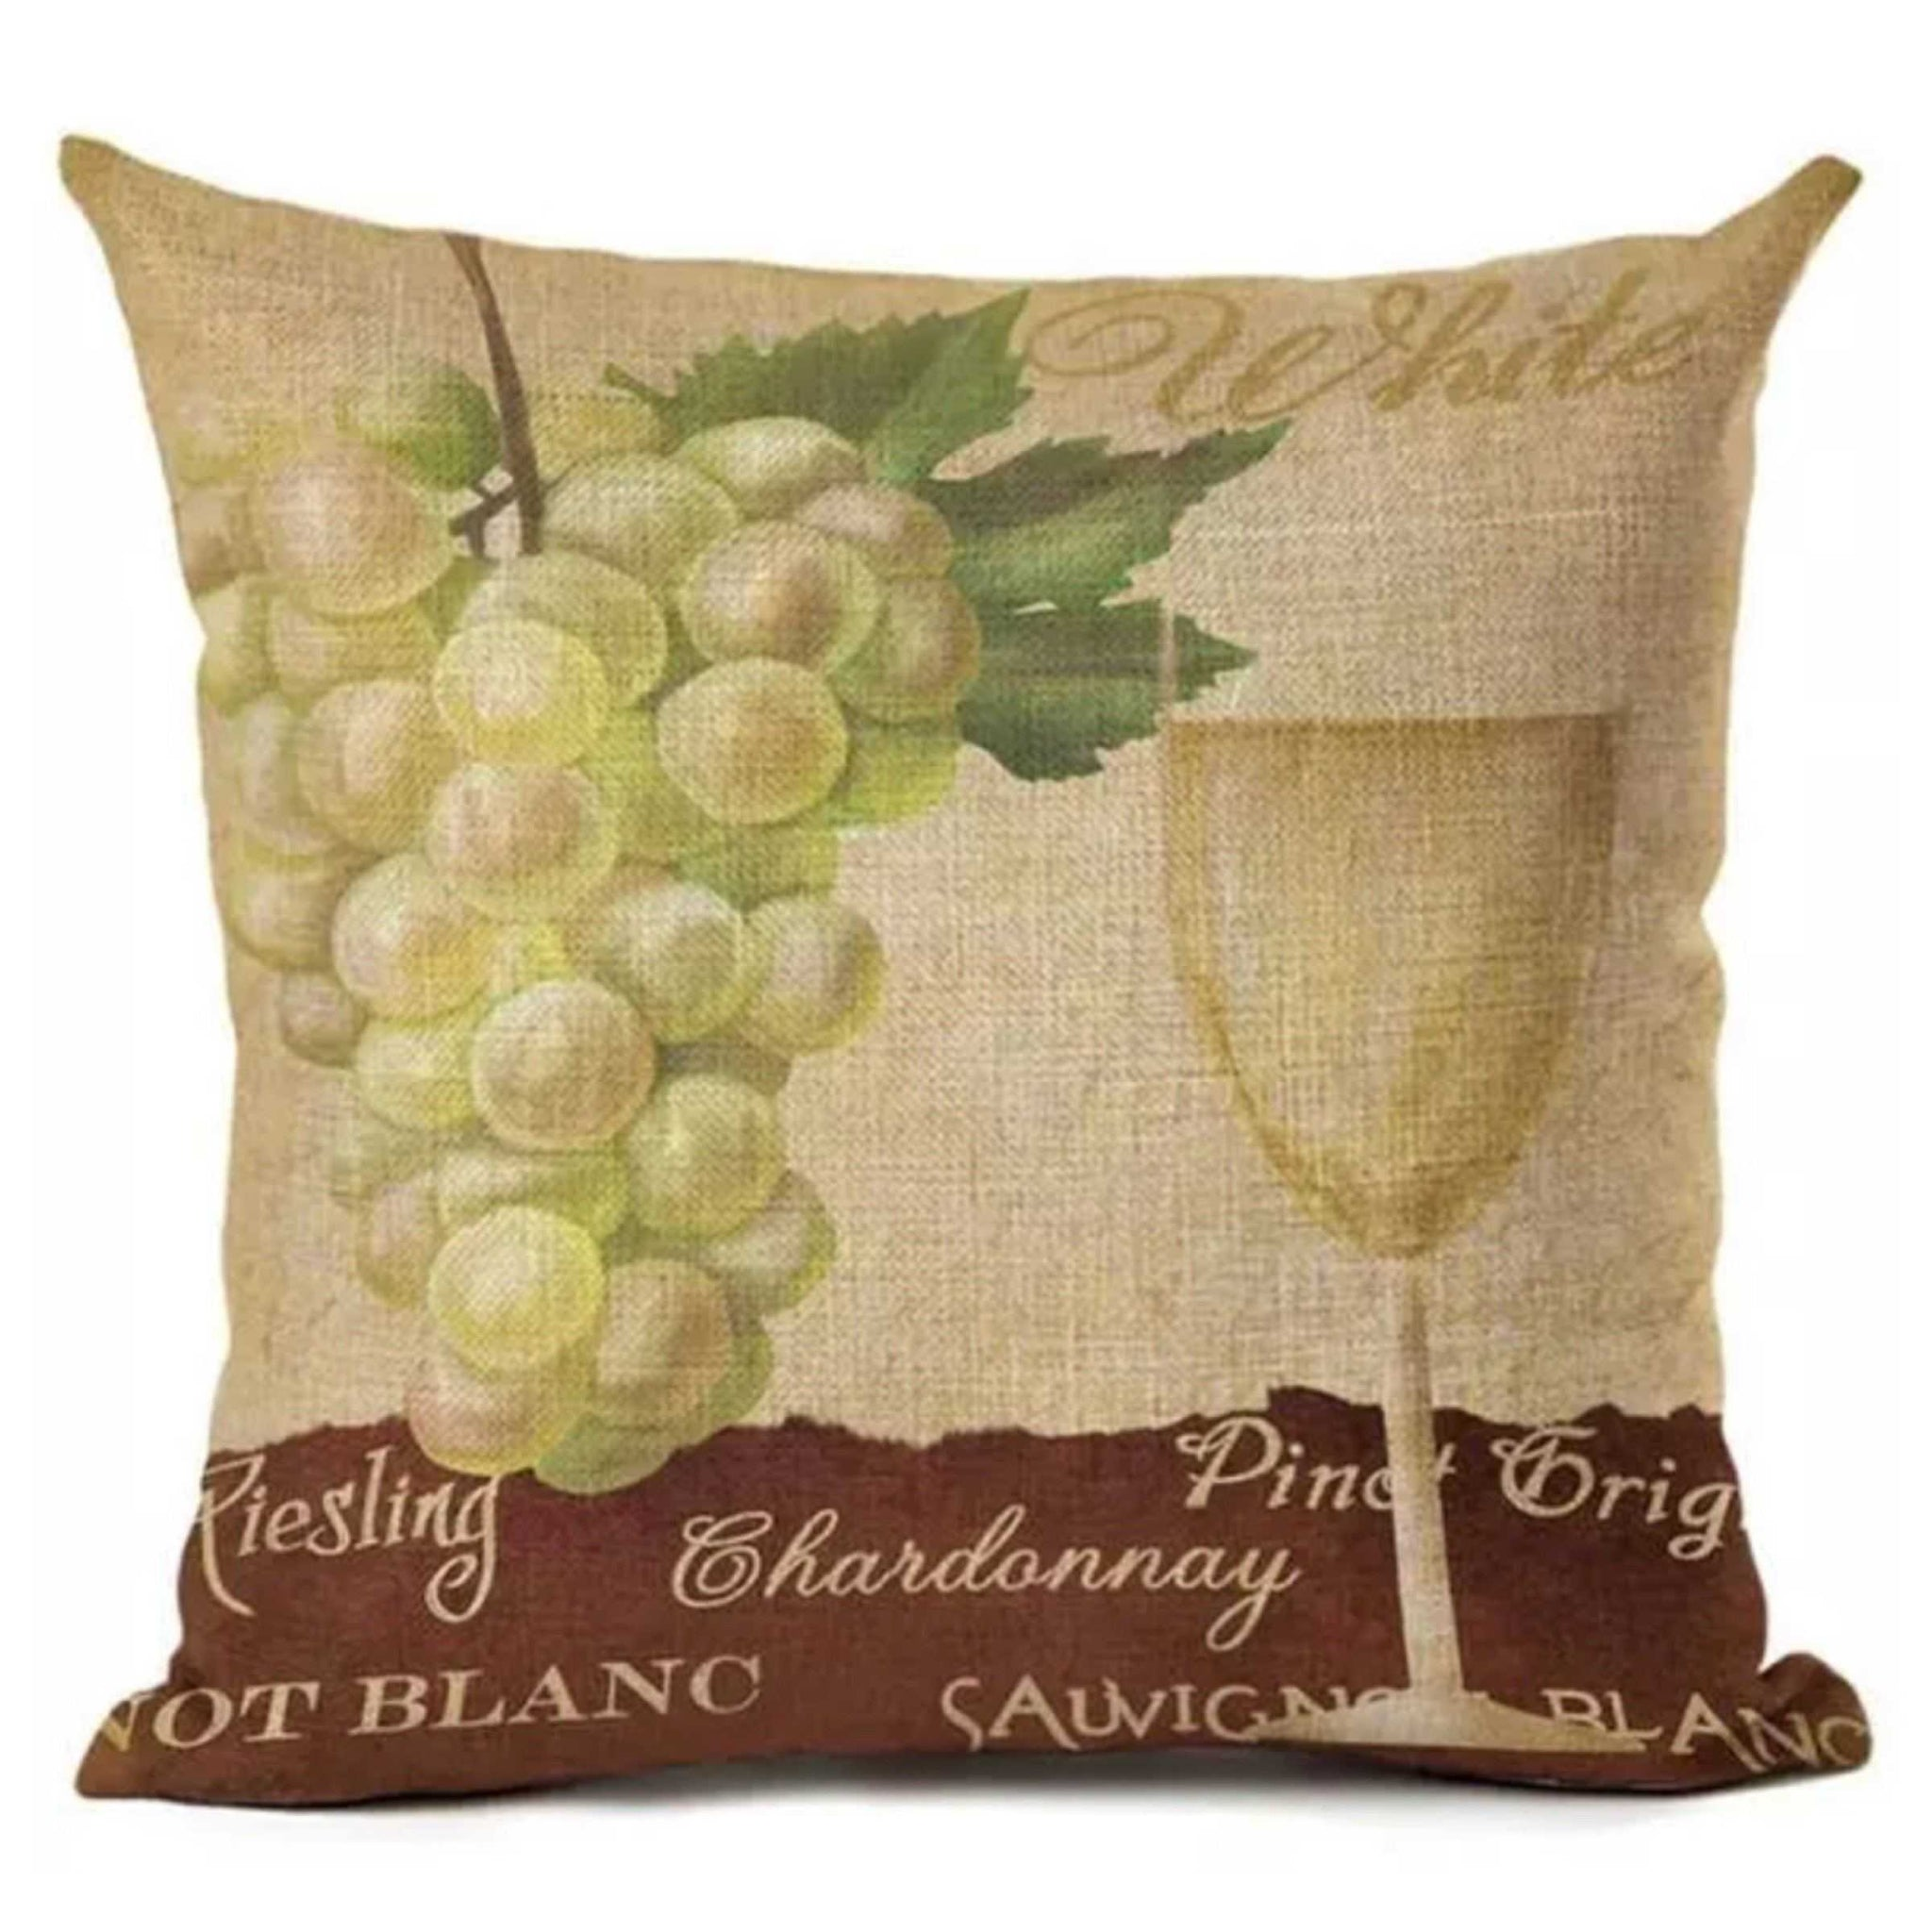 Cushion Pillow Vintage White Riesling Wine Cushions, Decorative Pillows The Renmy Store